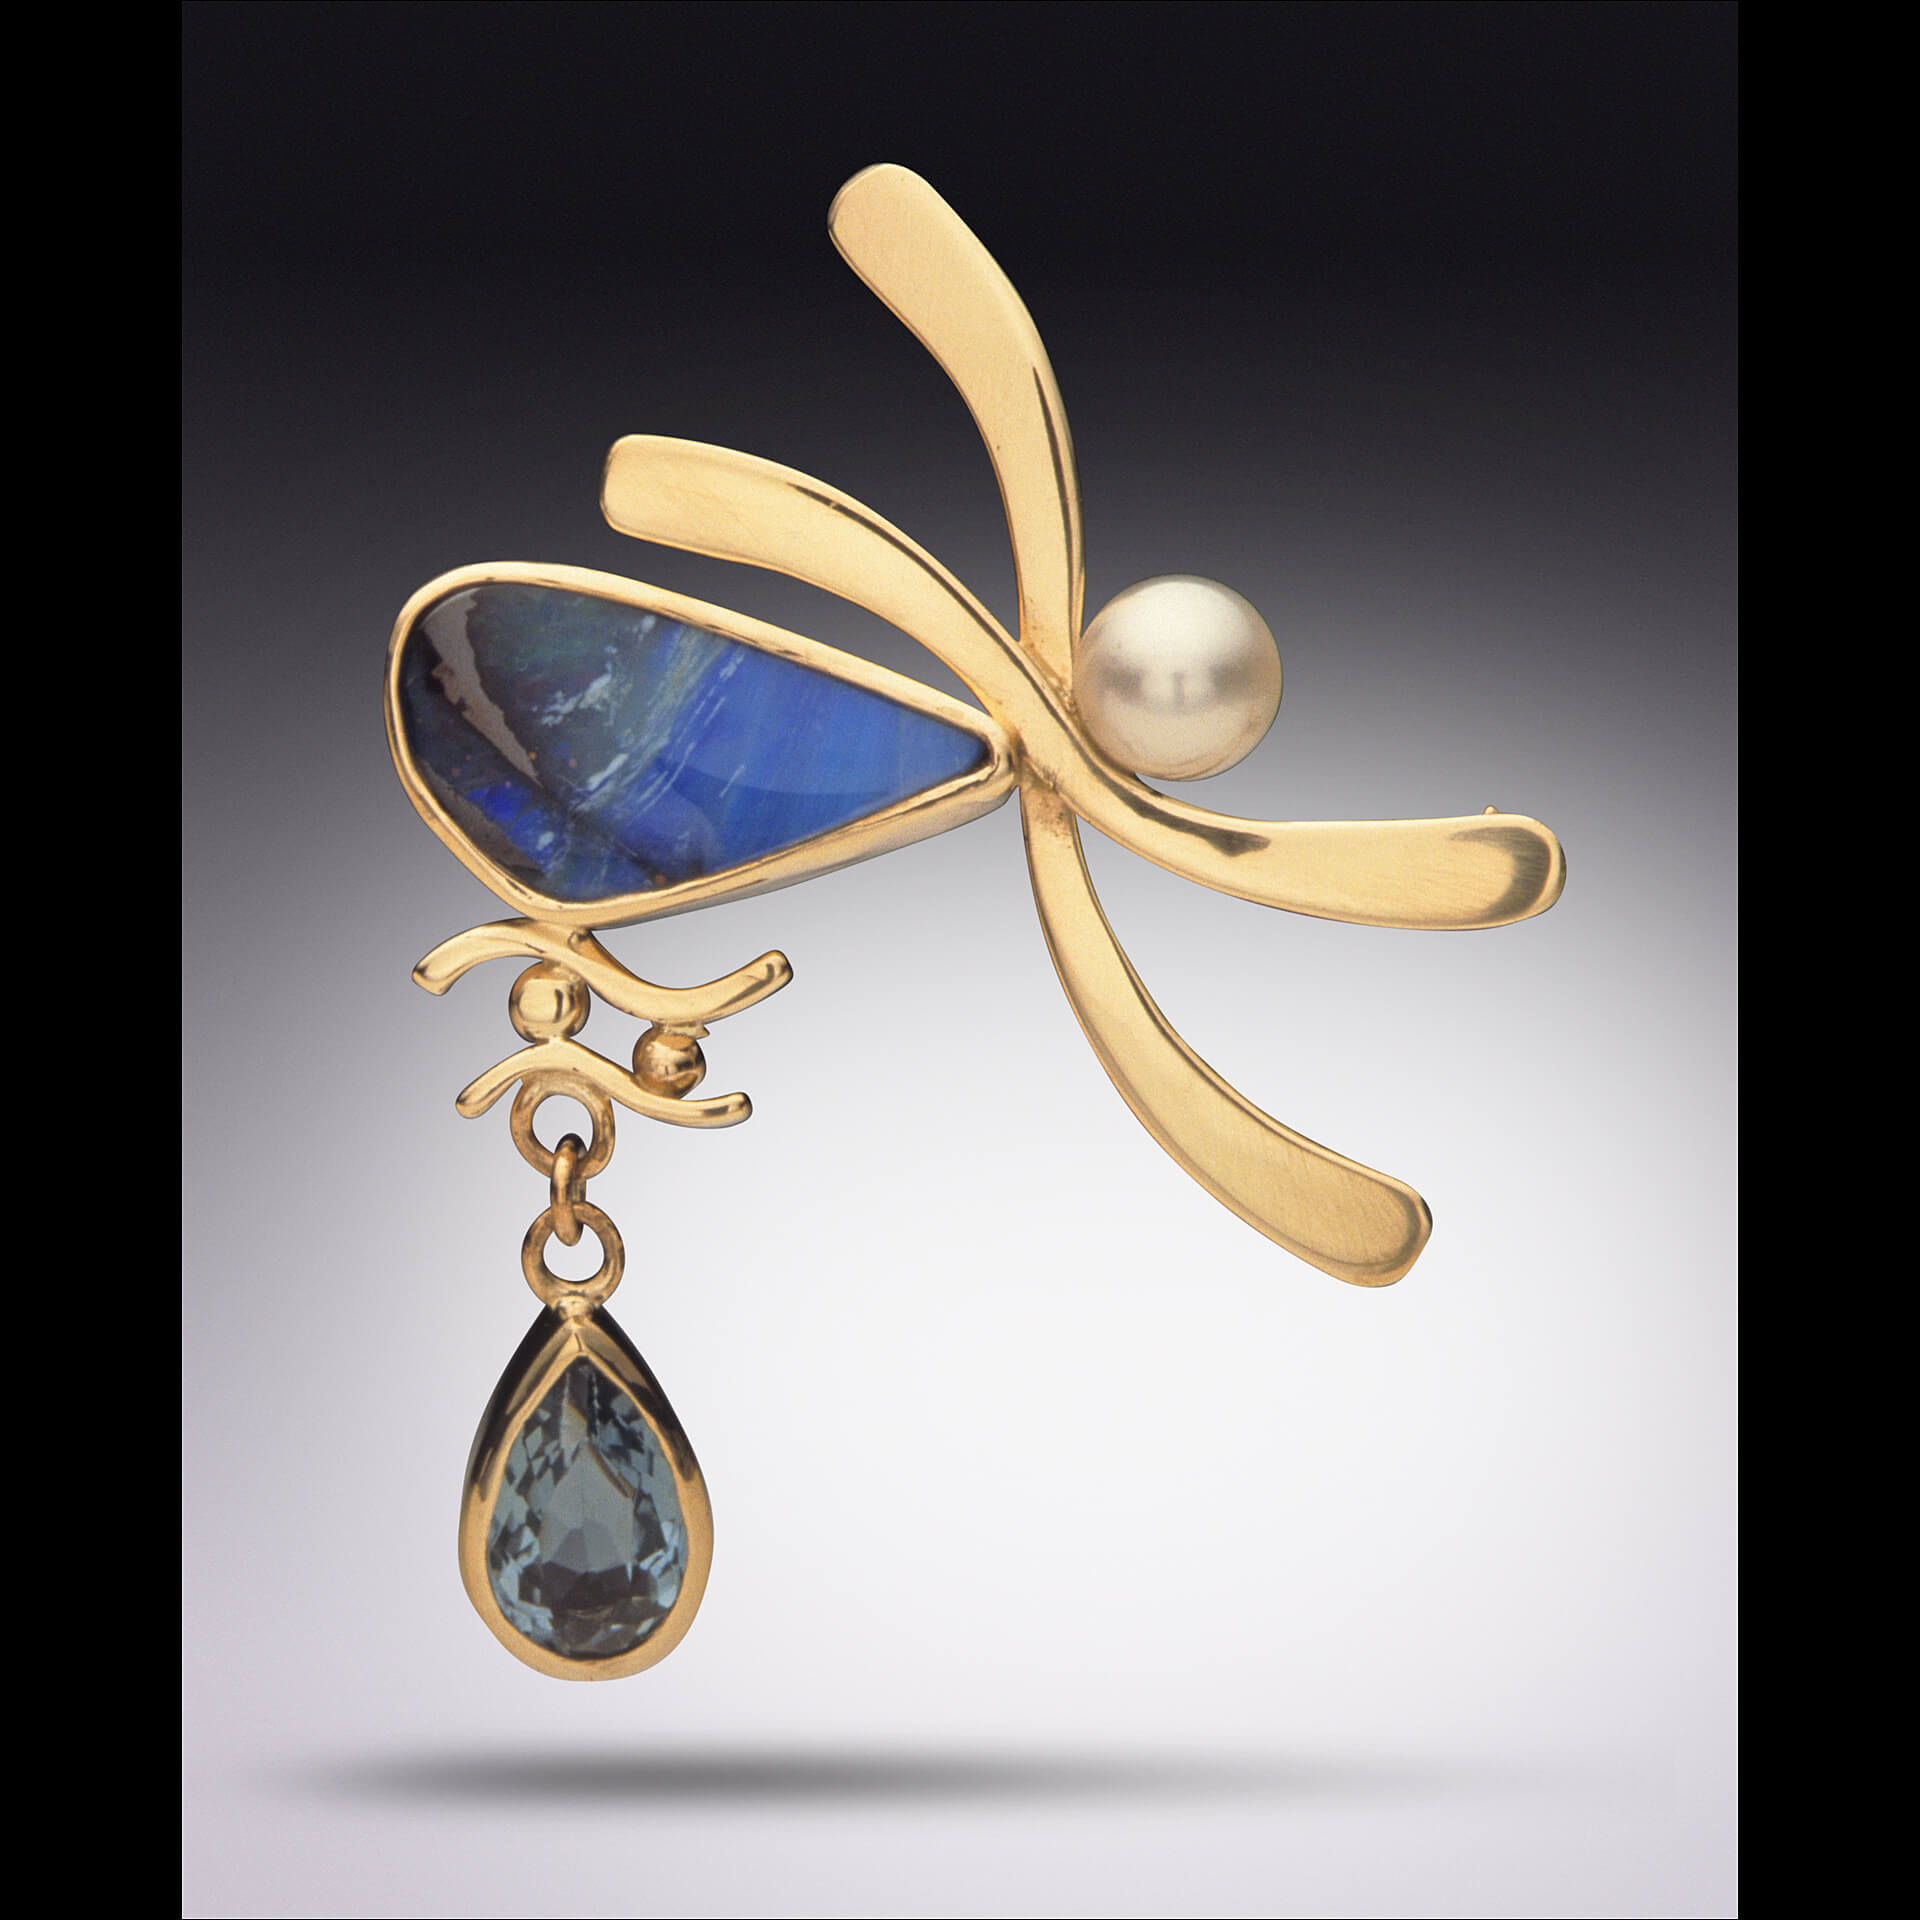 Sue Stone Jewelry, handcrafted pendant, handcrafted jewelry, semi-precious stones, gold, pearls